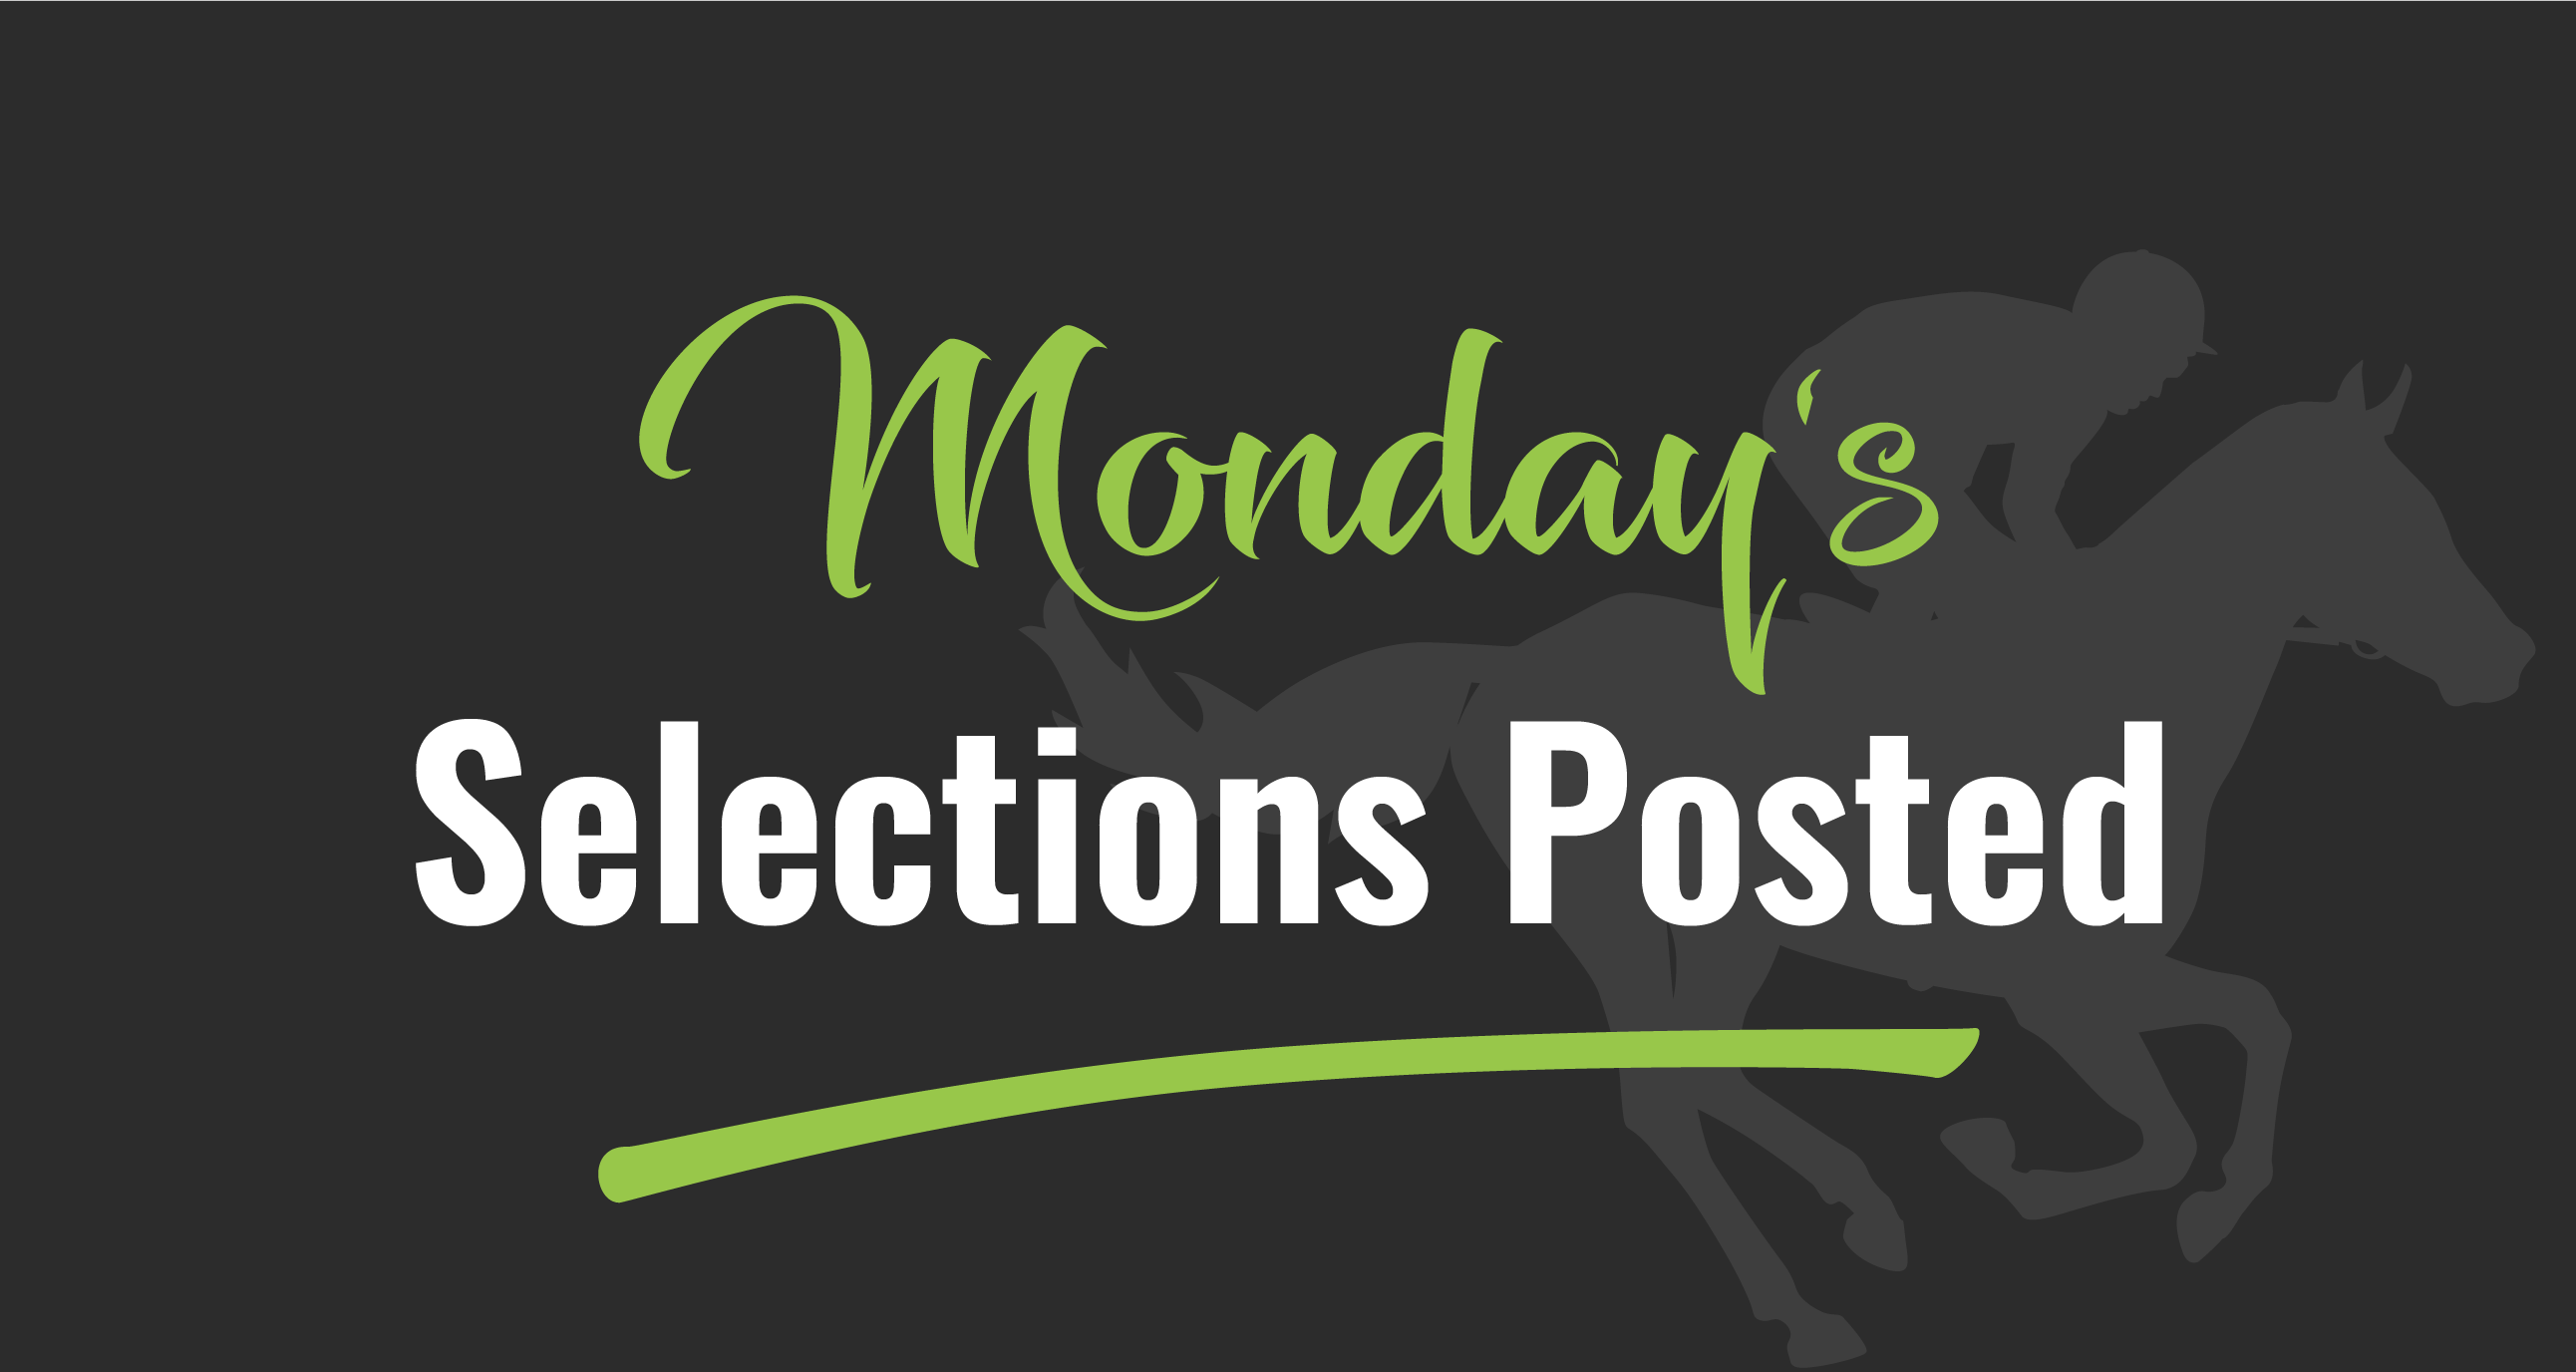 Selections for Monday 25 November 2019